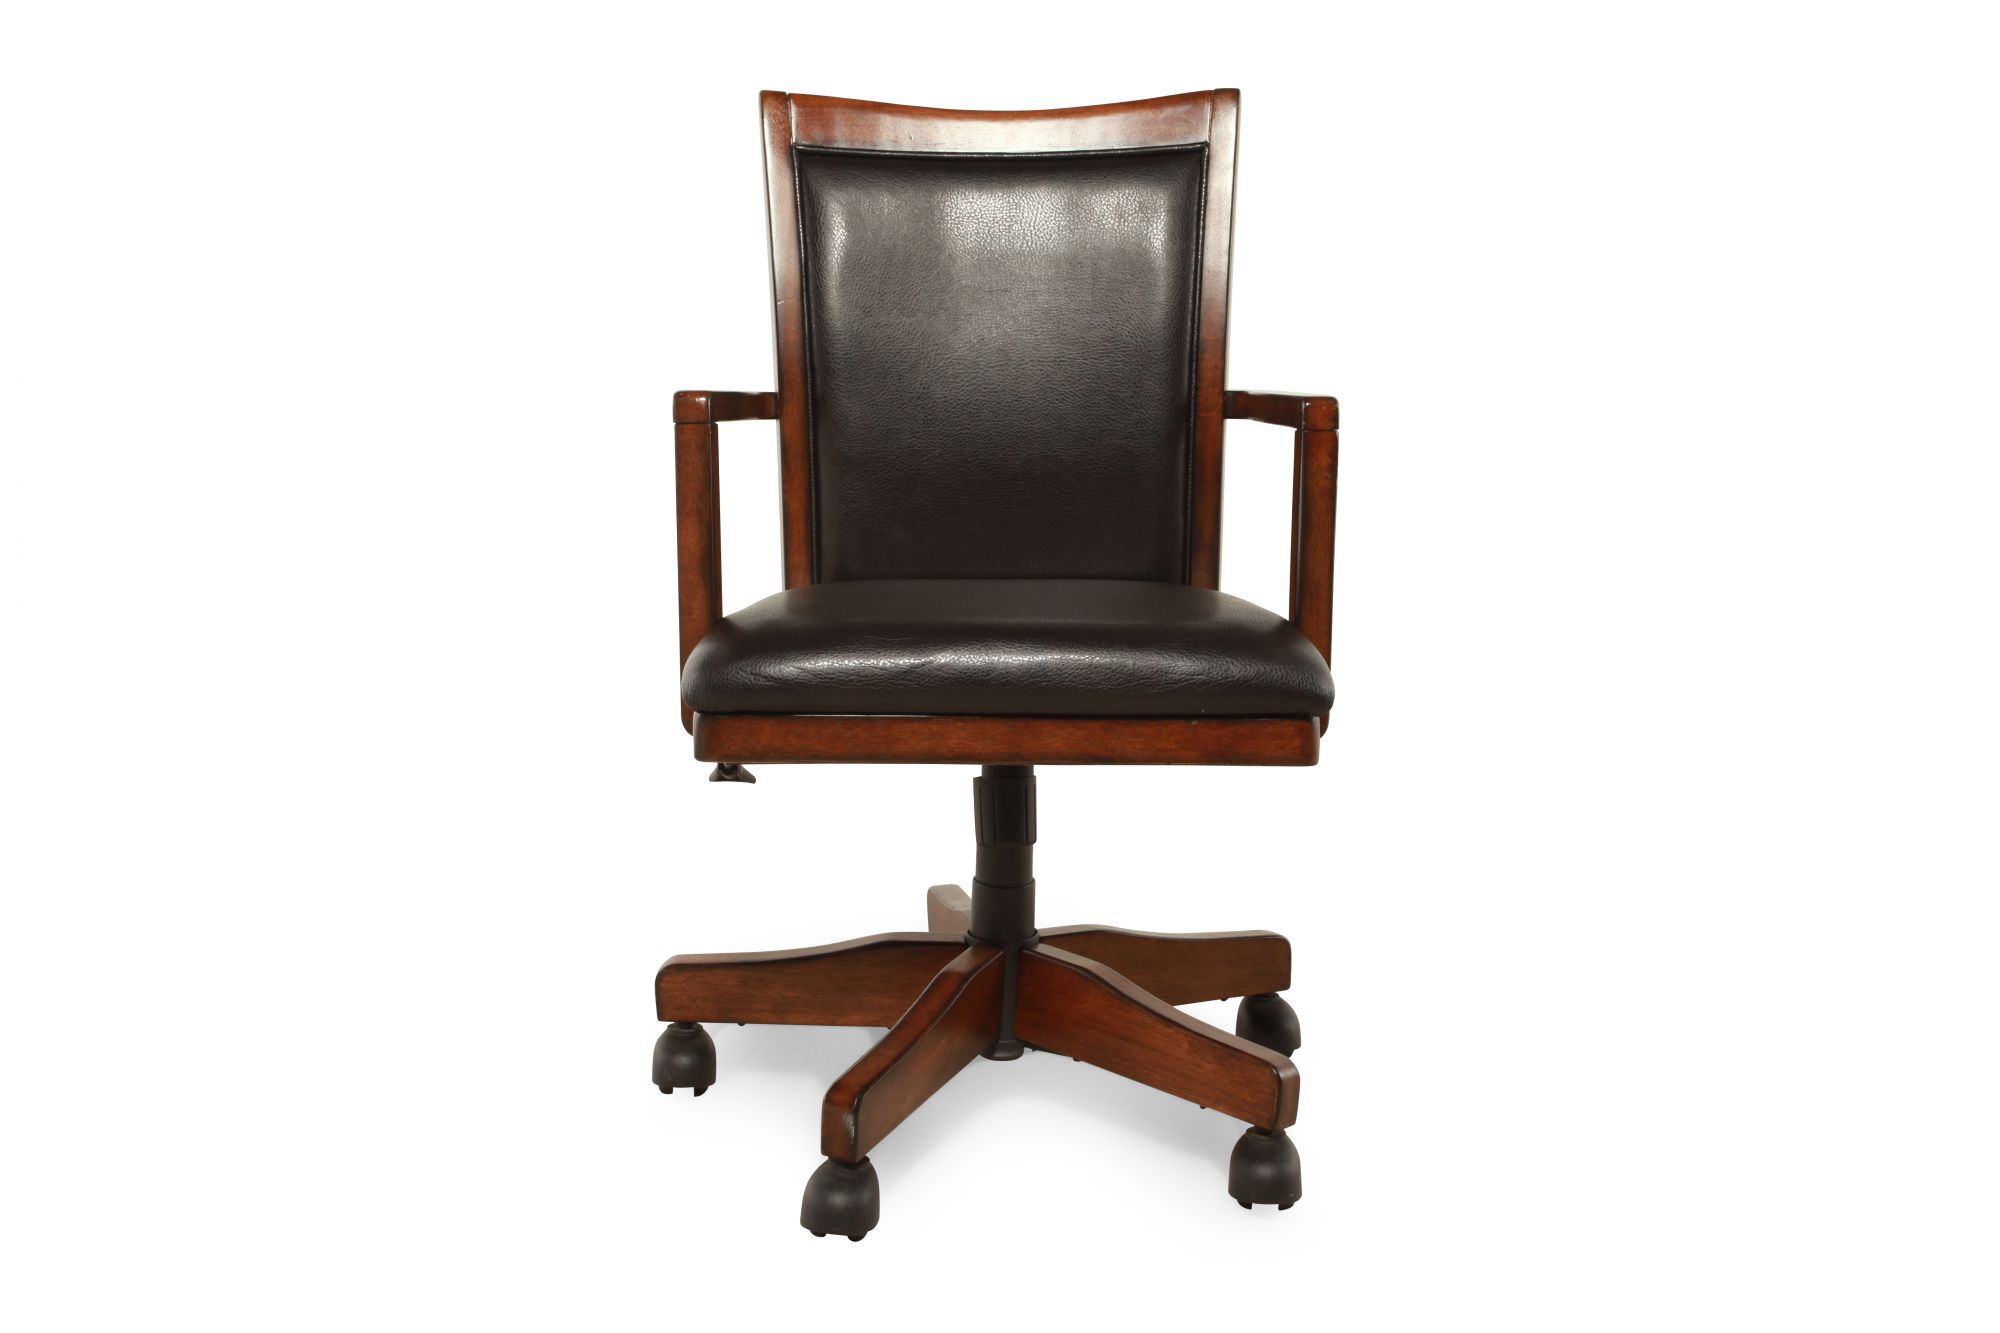 home office chairs desk chairs mathis brothers rh mathisbrothers com